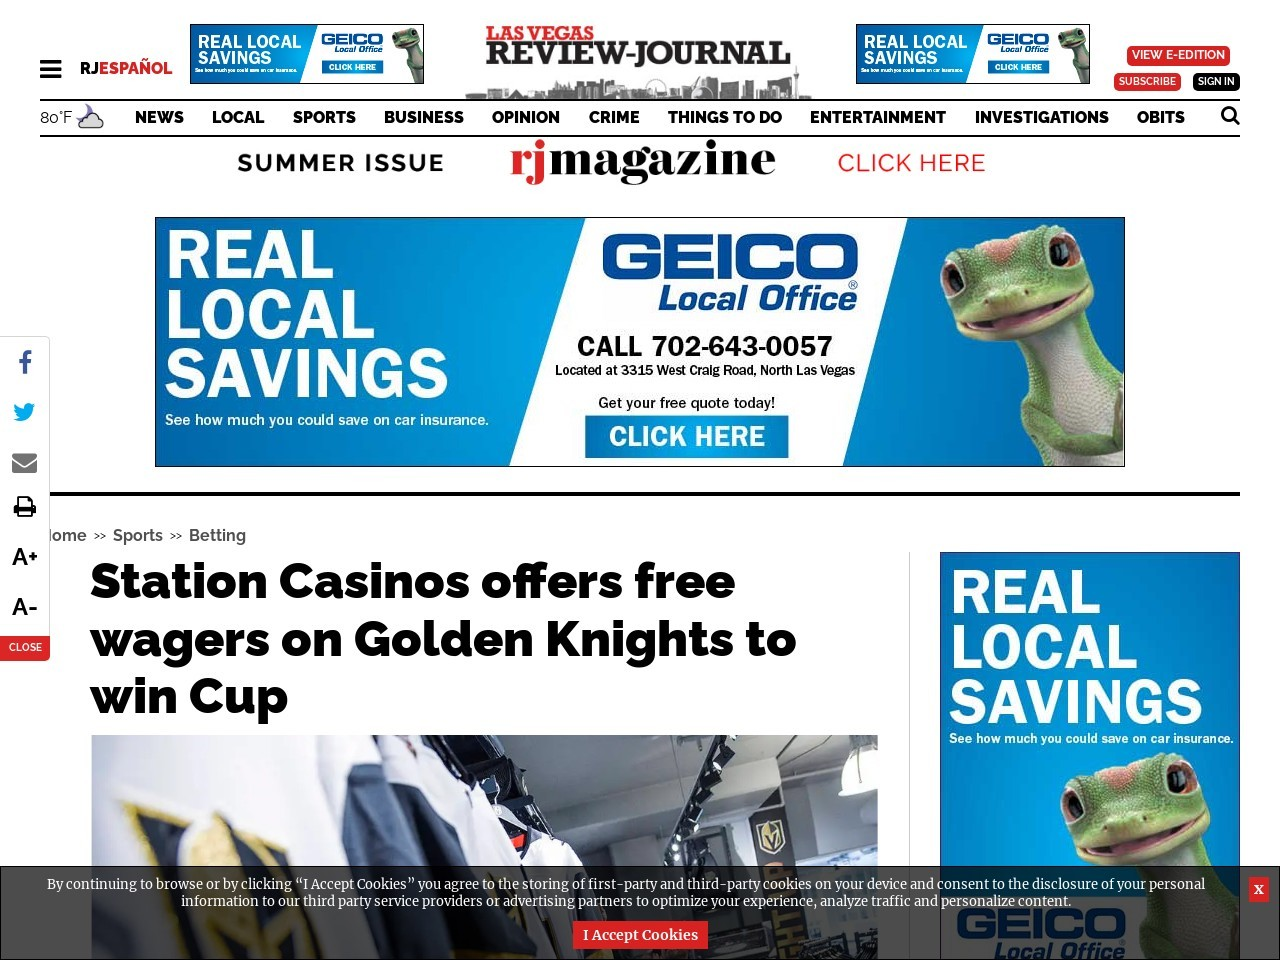 Station Casinos offers free wagers on Golden Knights to win Cup